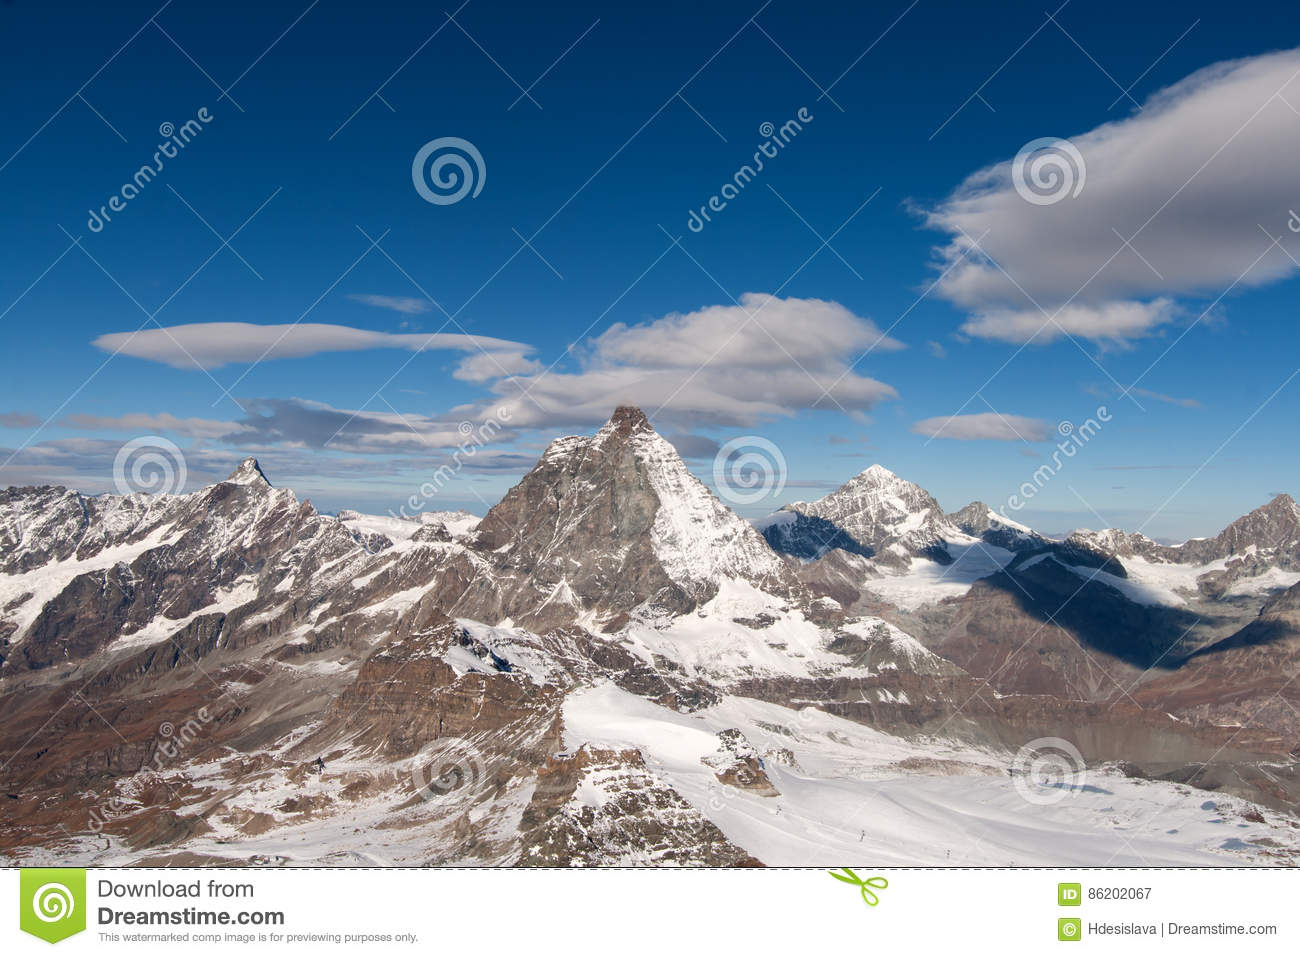 Mount Matterhorn covered with clouds on a clear day after snow fall in autumn, Valais